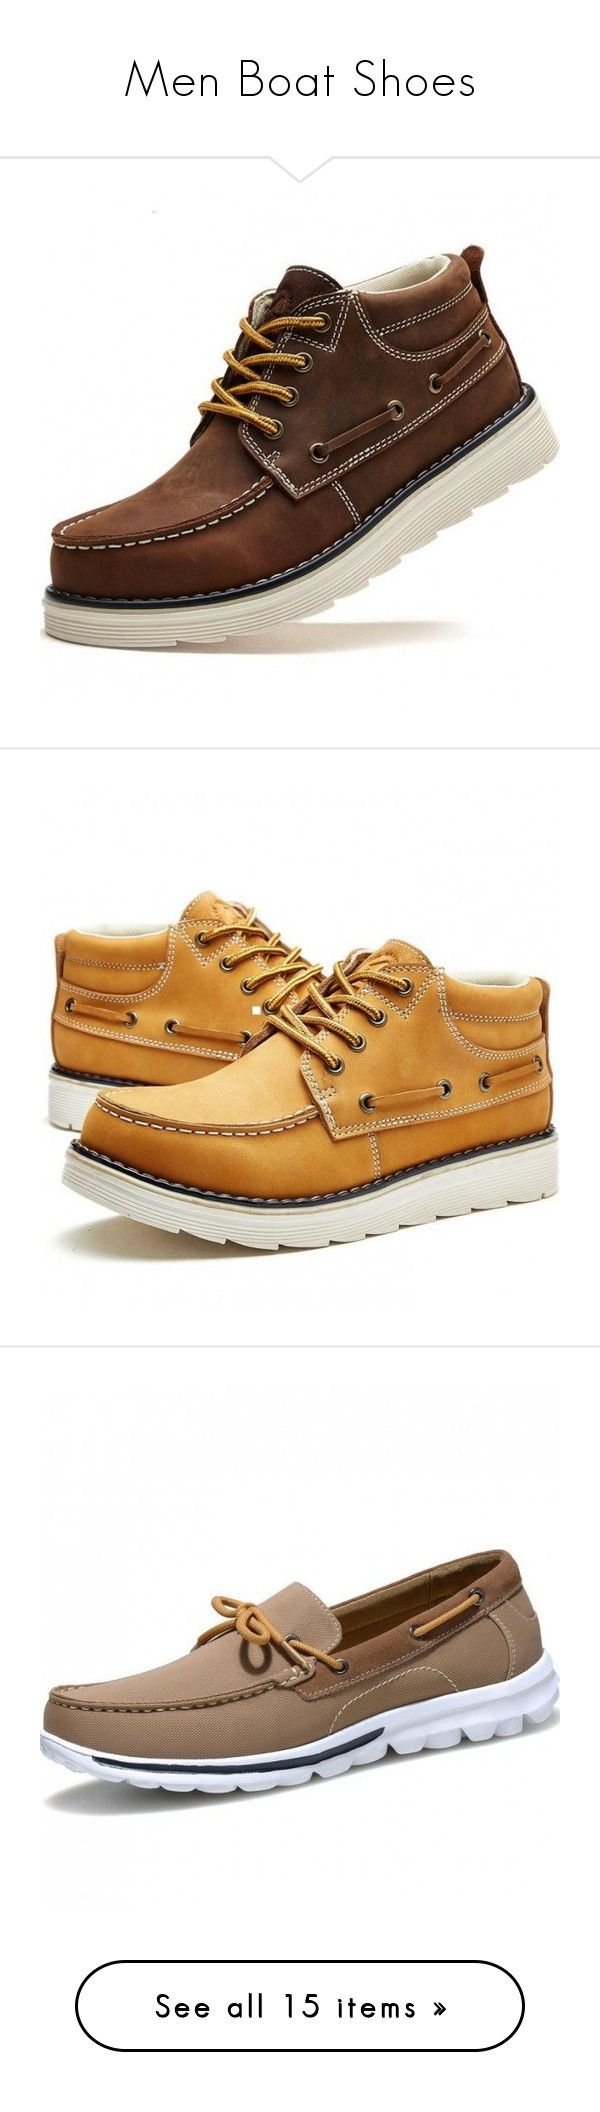 """""""Men Boat Shoes"""" by yestn ❤ liked on Polyvore featuring shoes, men's fashion, men's shoes, men's boots, men's work boots, men's loafers, mens sperry topsiders, mens boat shoes, mens topsiders and sperry top sider mens shoes"""